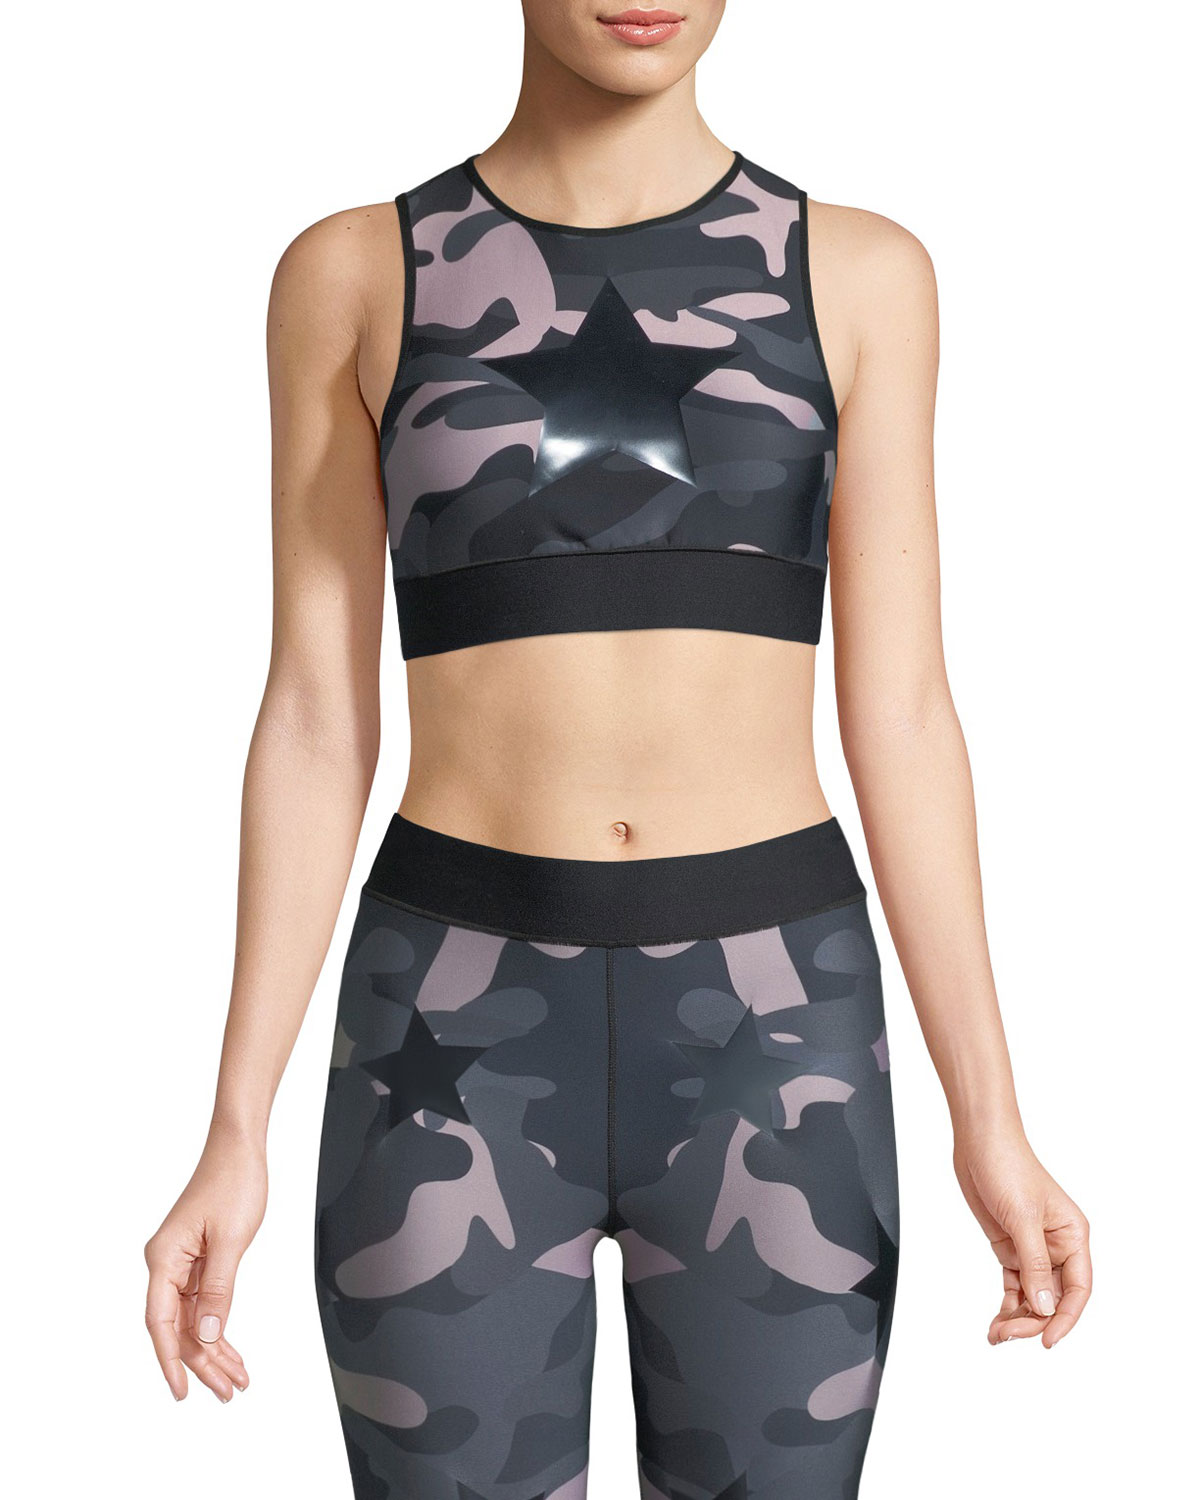 Knockout Appliquéd Camouflage-Print Stretch Sports Bra in Black